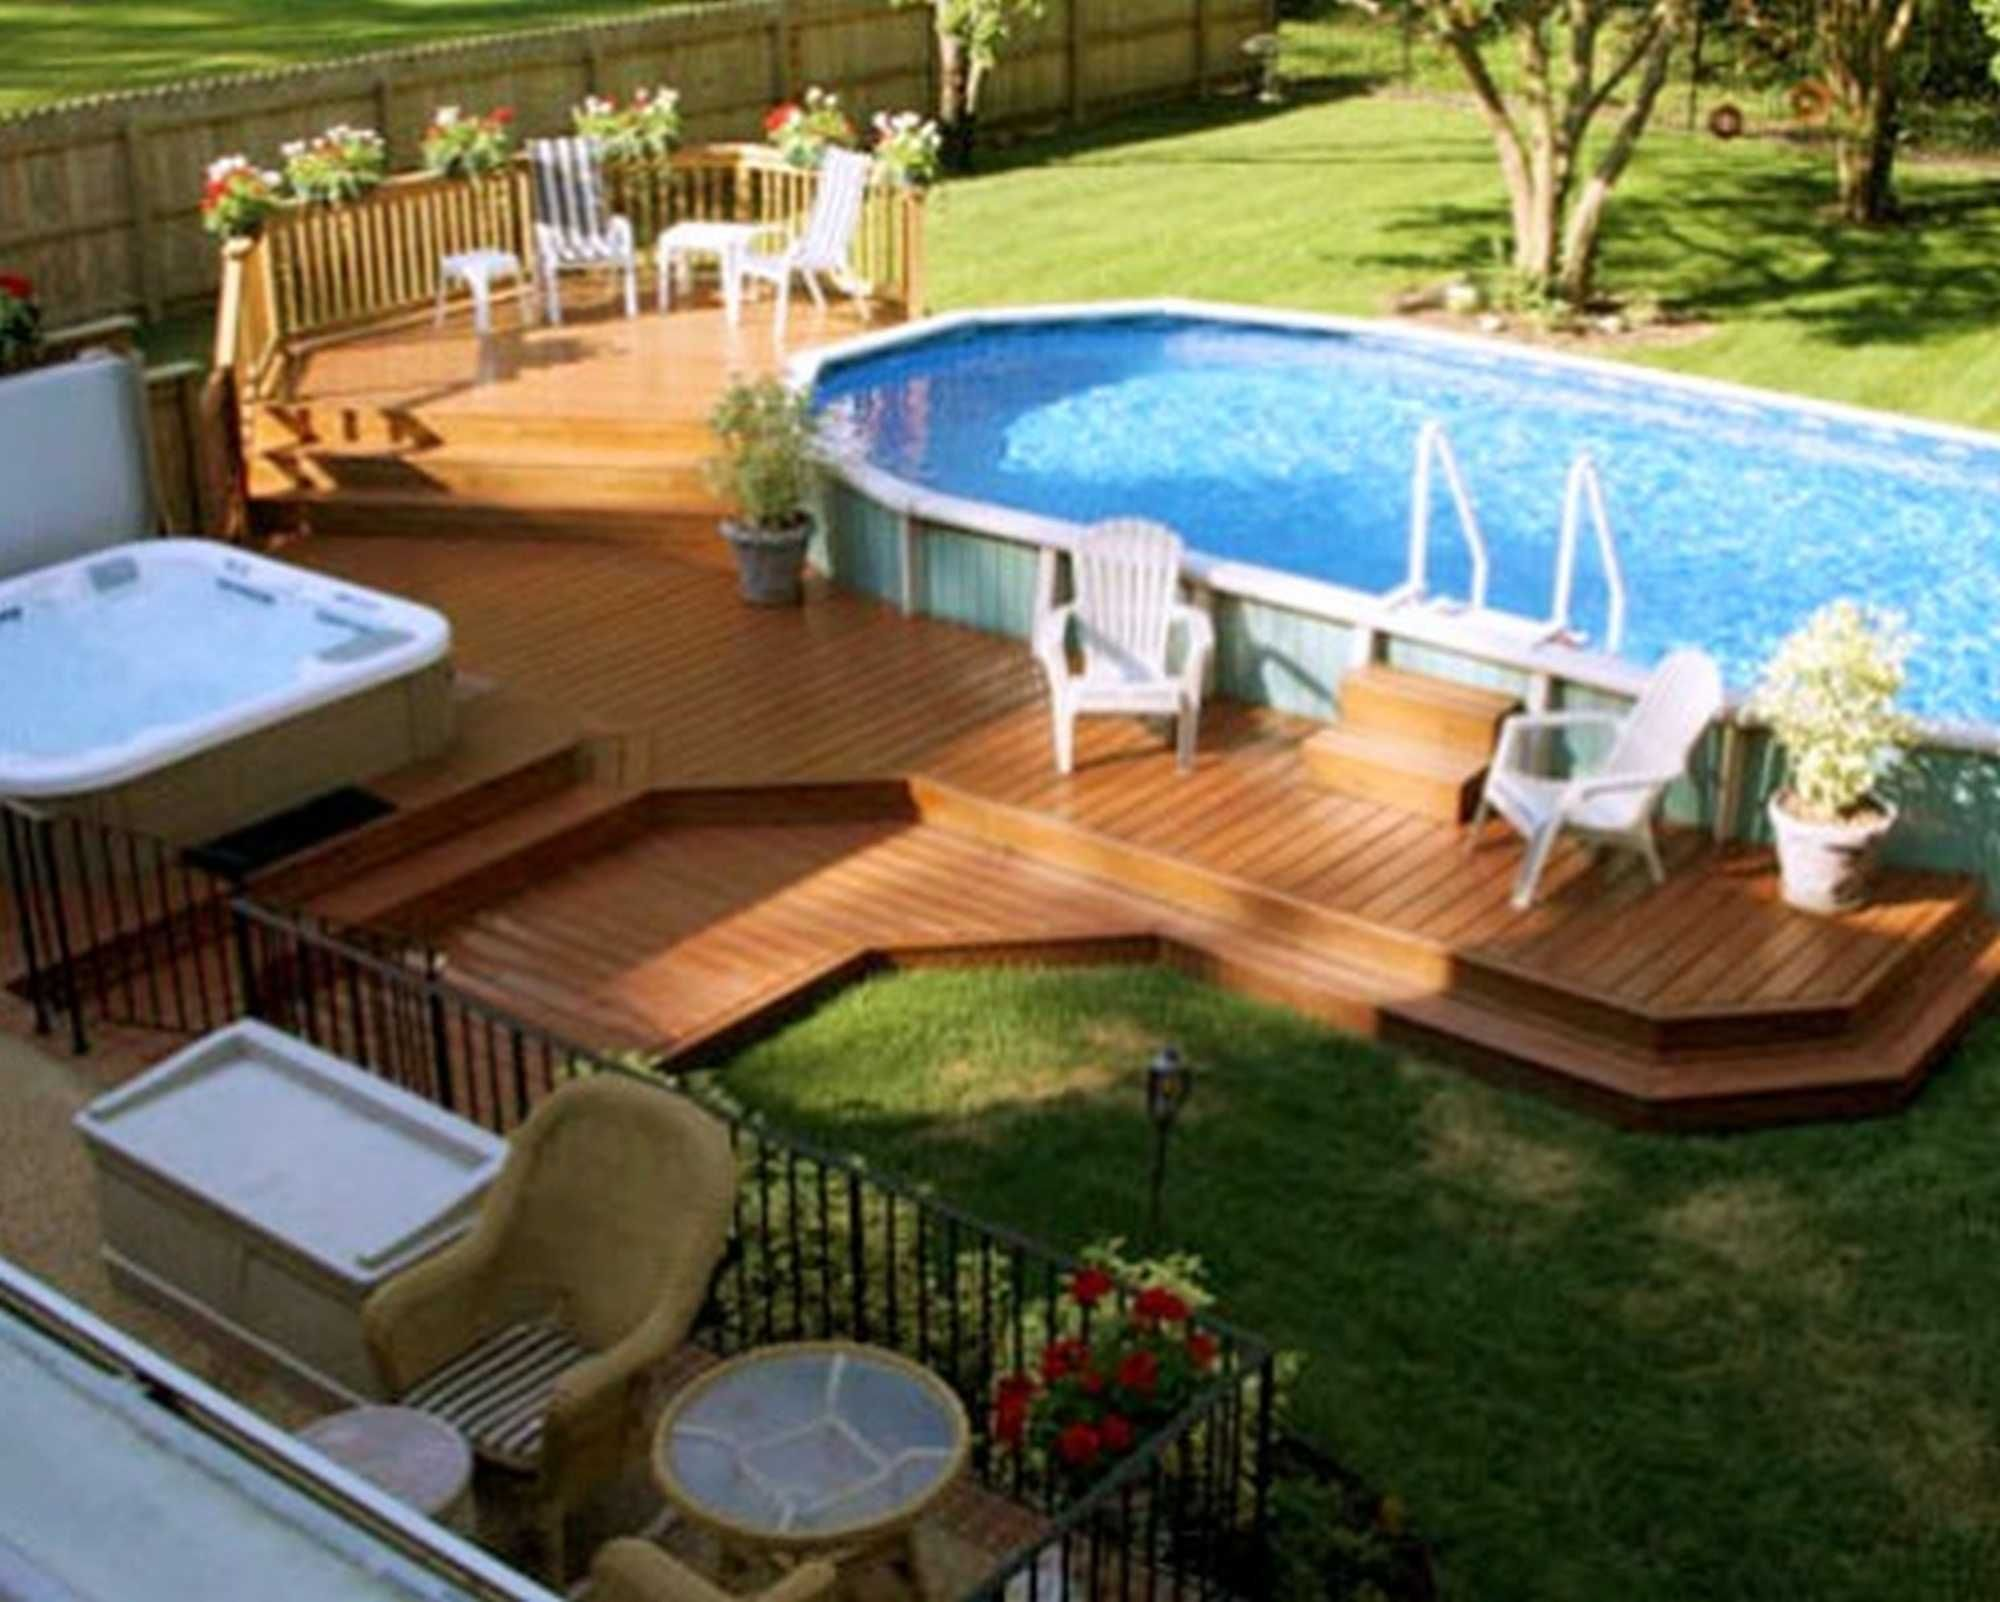 Enchanting Oval Above Ground Pool Deck Plans And Design Ideas For